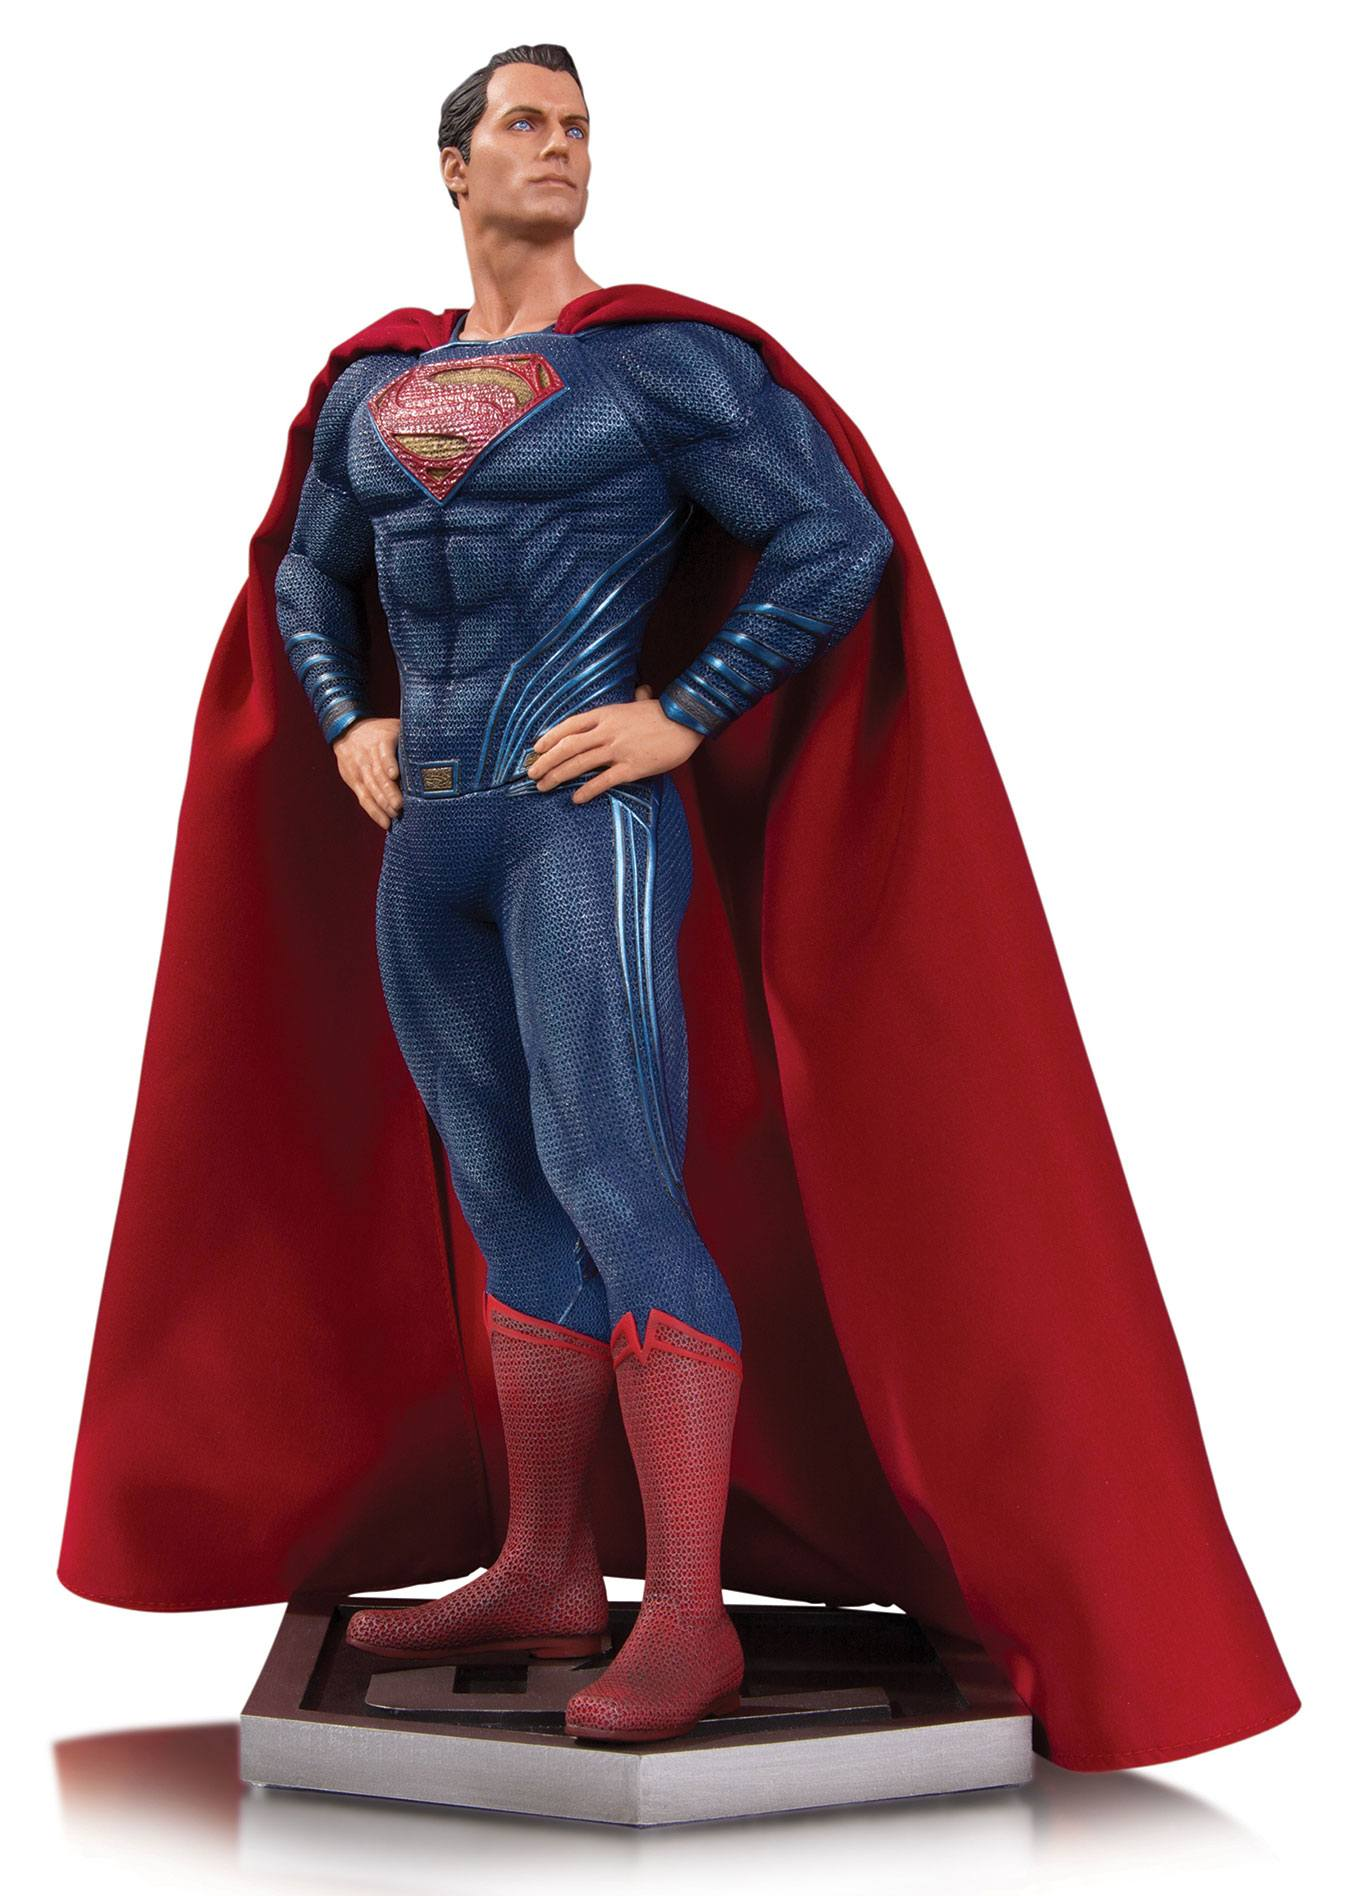 a1bed7dbd1 Home/Shop/DC Comics. Justice League Movie Statue Superman 33 cm